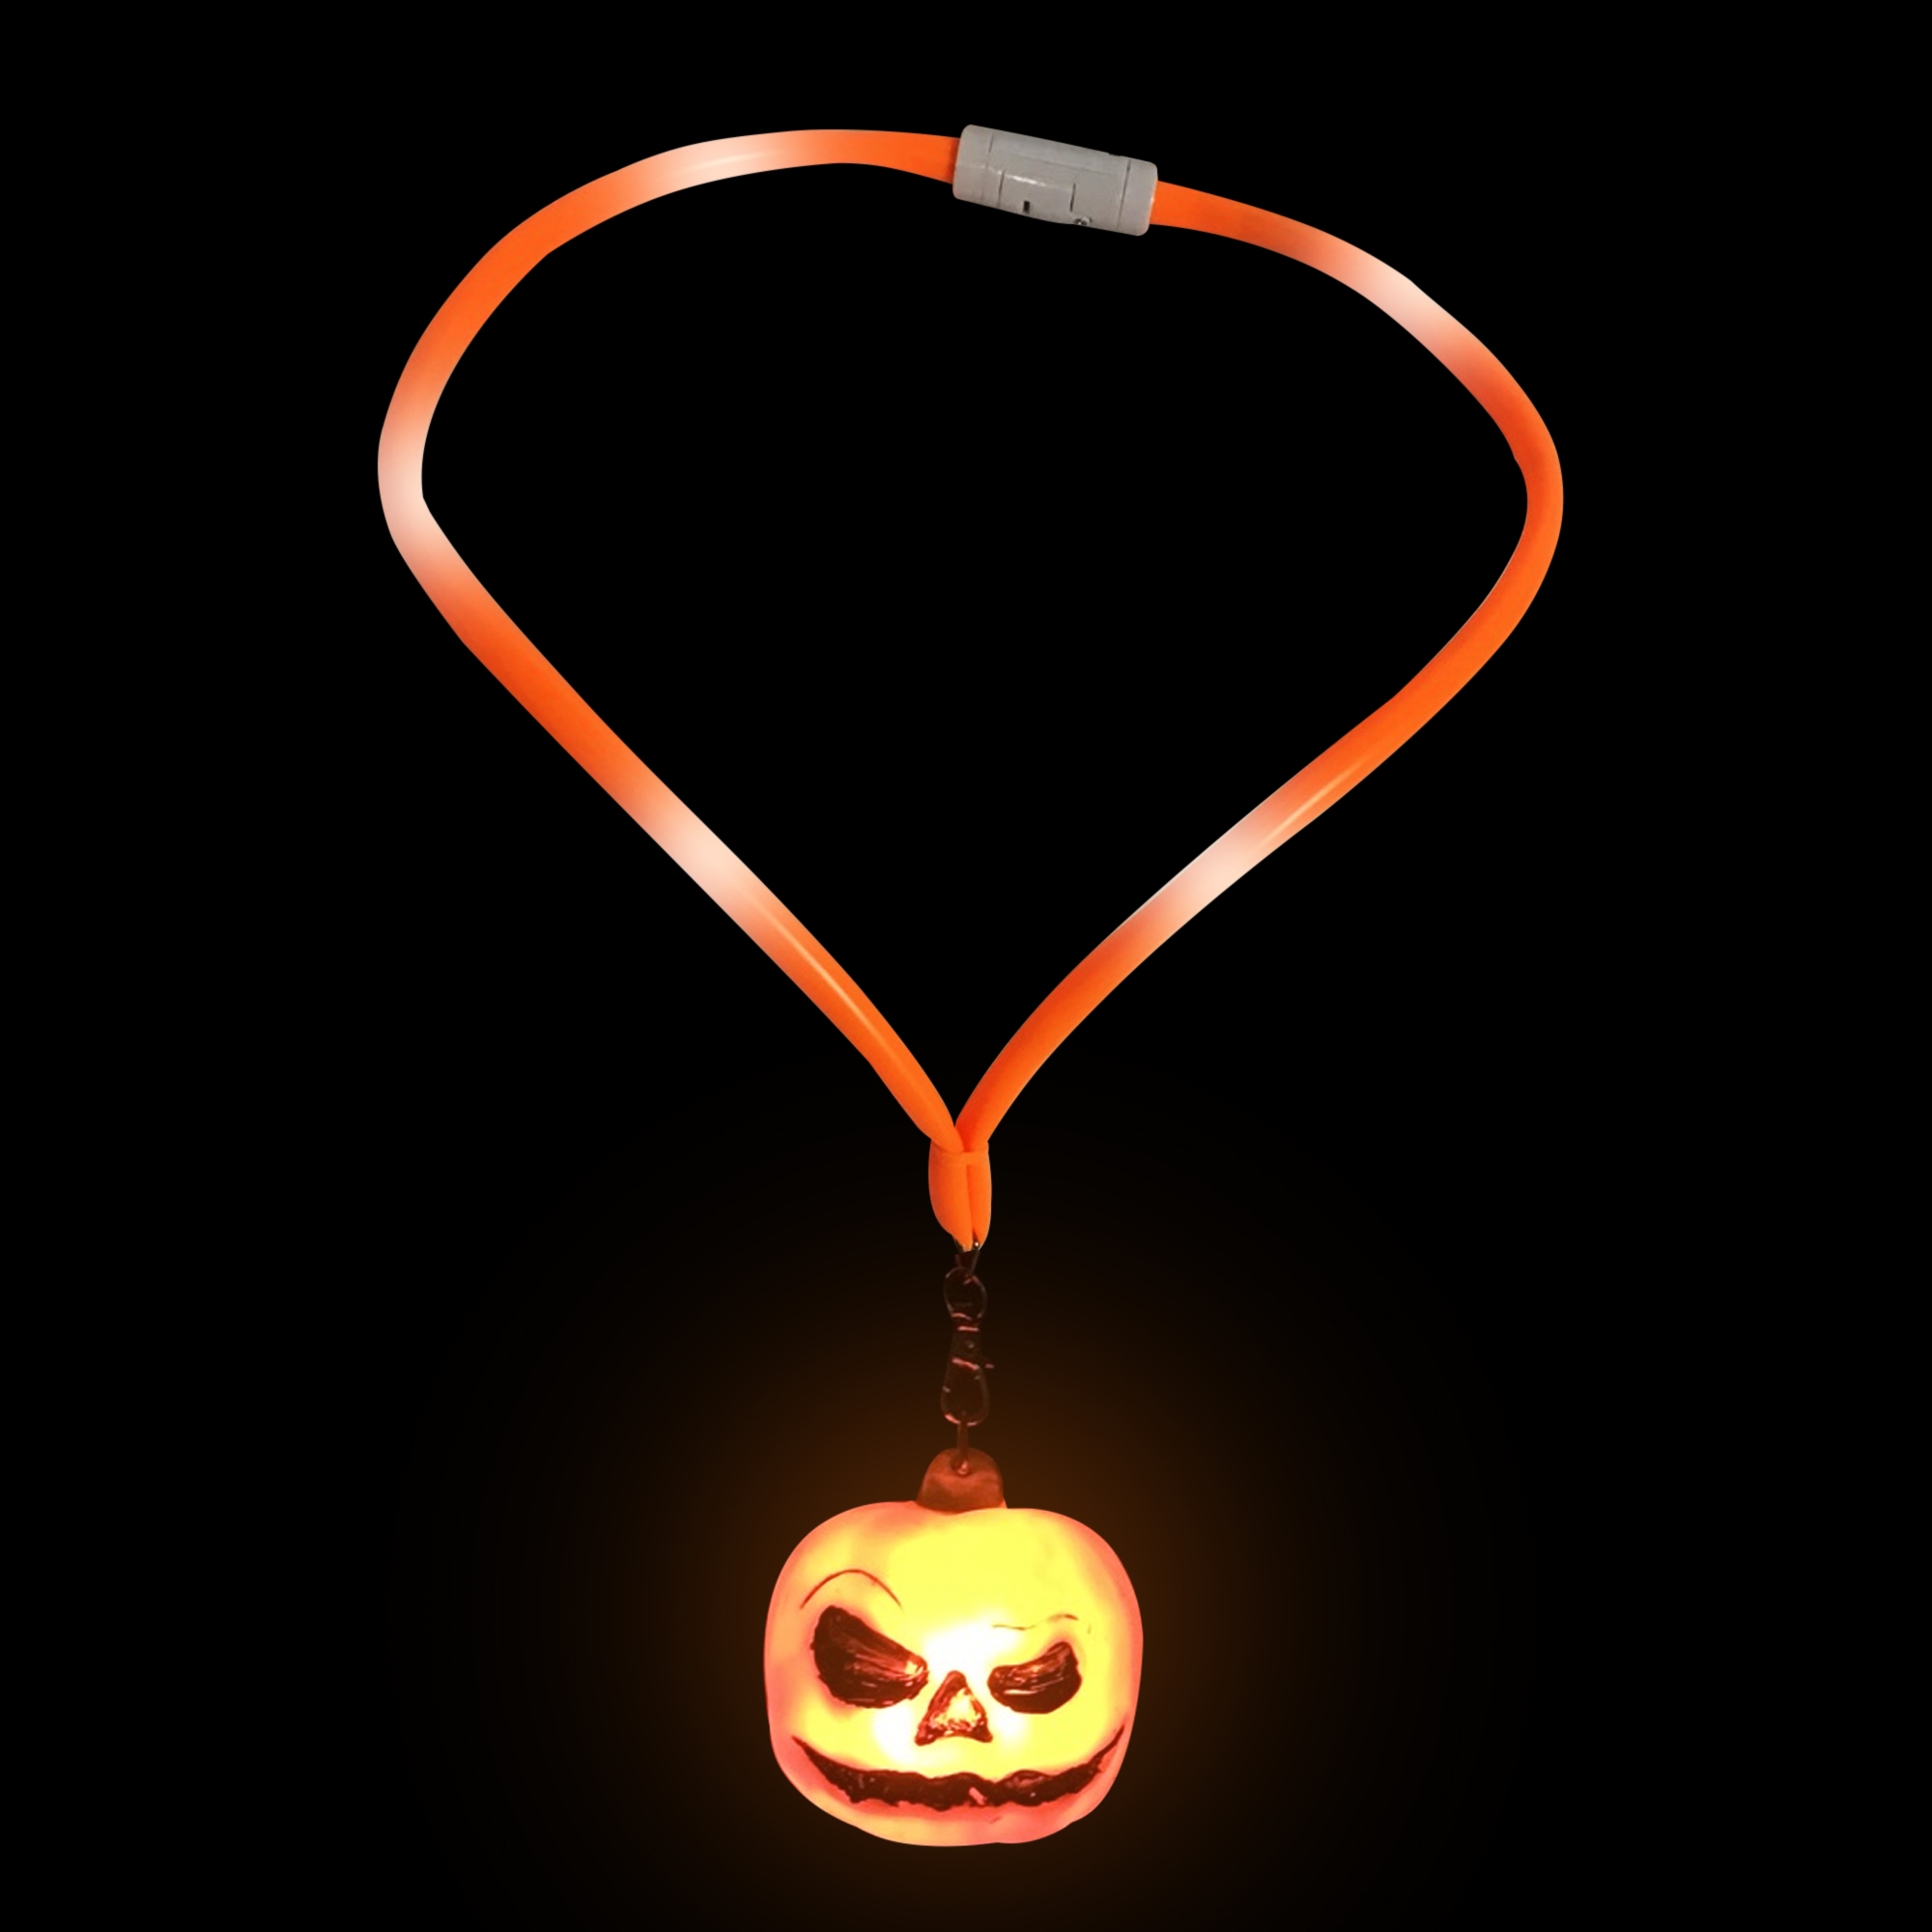 Fun Central O768 LED Light Up Flashing Lanyard - Pumpkin